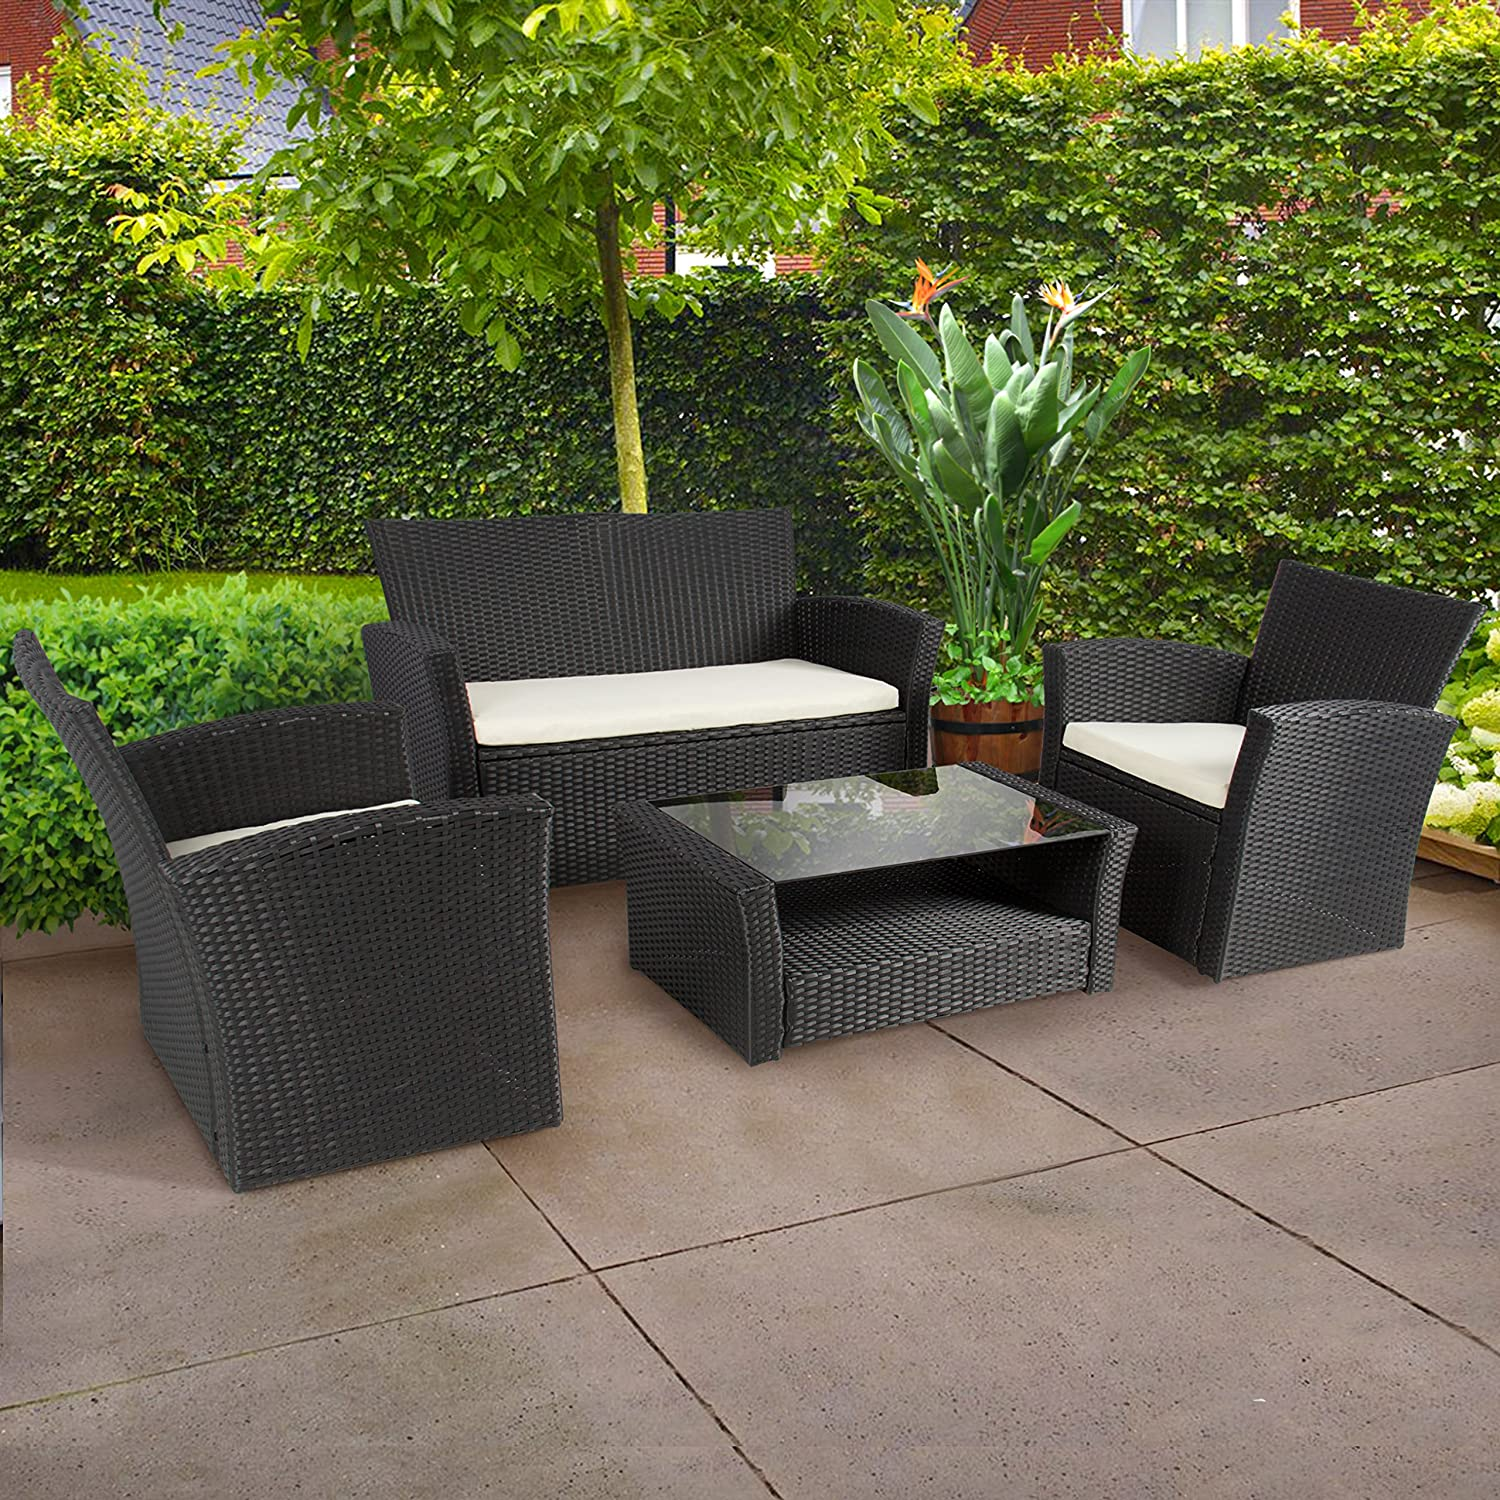 Exceptional Amazon.com : Best Choice Products 4pc Outdoor Patio Garden Furniture Wicker  Rattan Sofa Set Black : Garden U0026 Outdoor